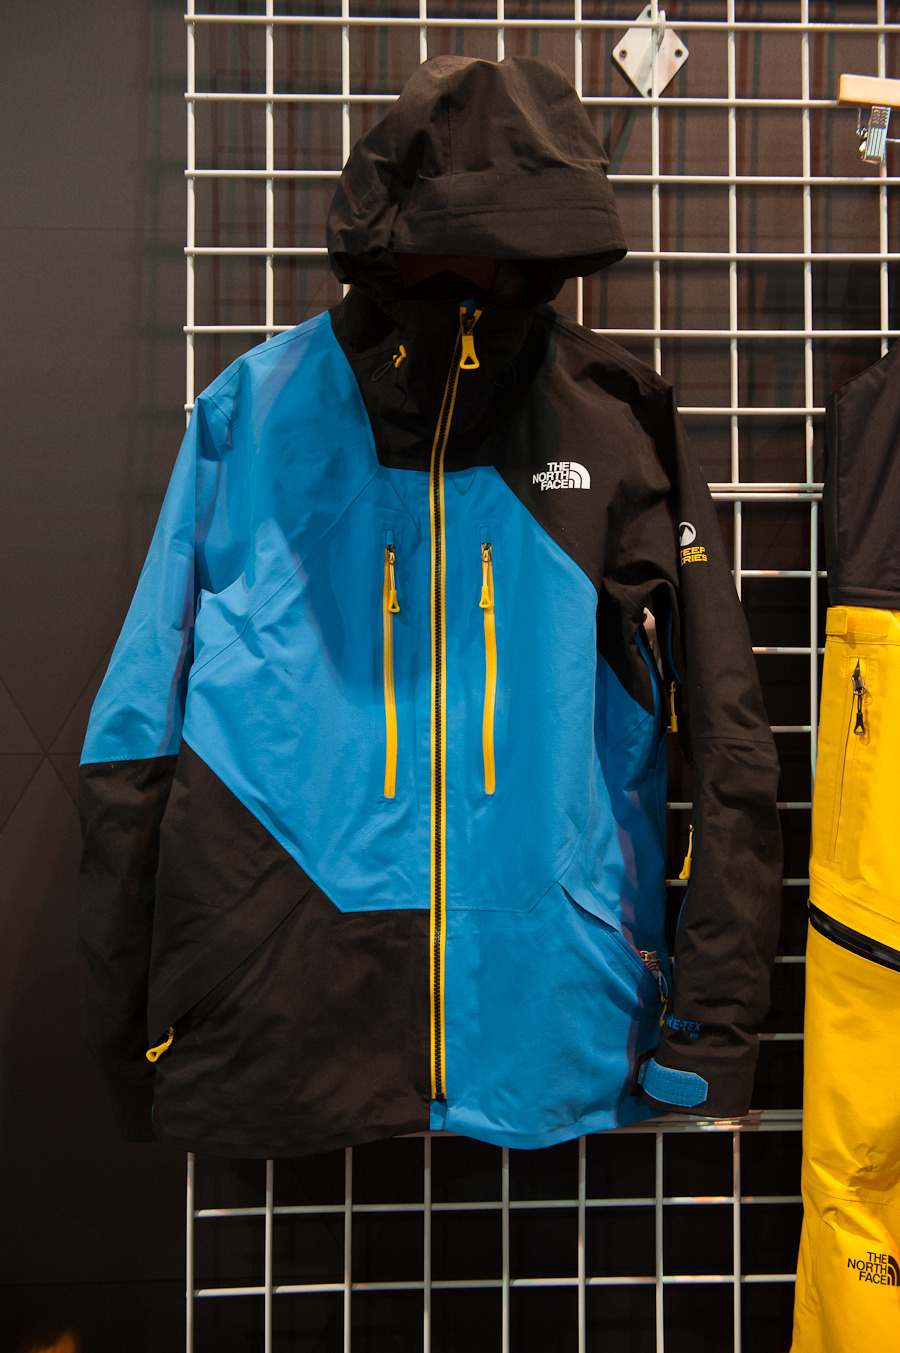 The pro athlete inspired Steep Series from The North Face features the Free Thinker jacket. It has GORE-TEX® 3 layer pro, and an internal fleece-lined cell phone pocket.  - ©Ashleigh Miller Photography